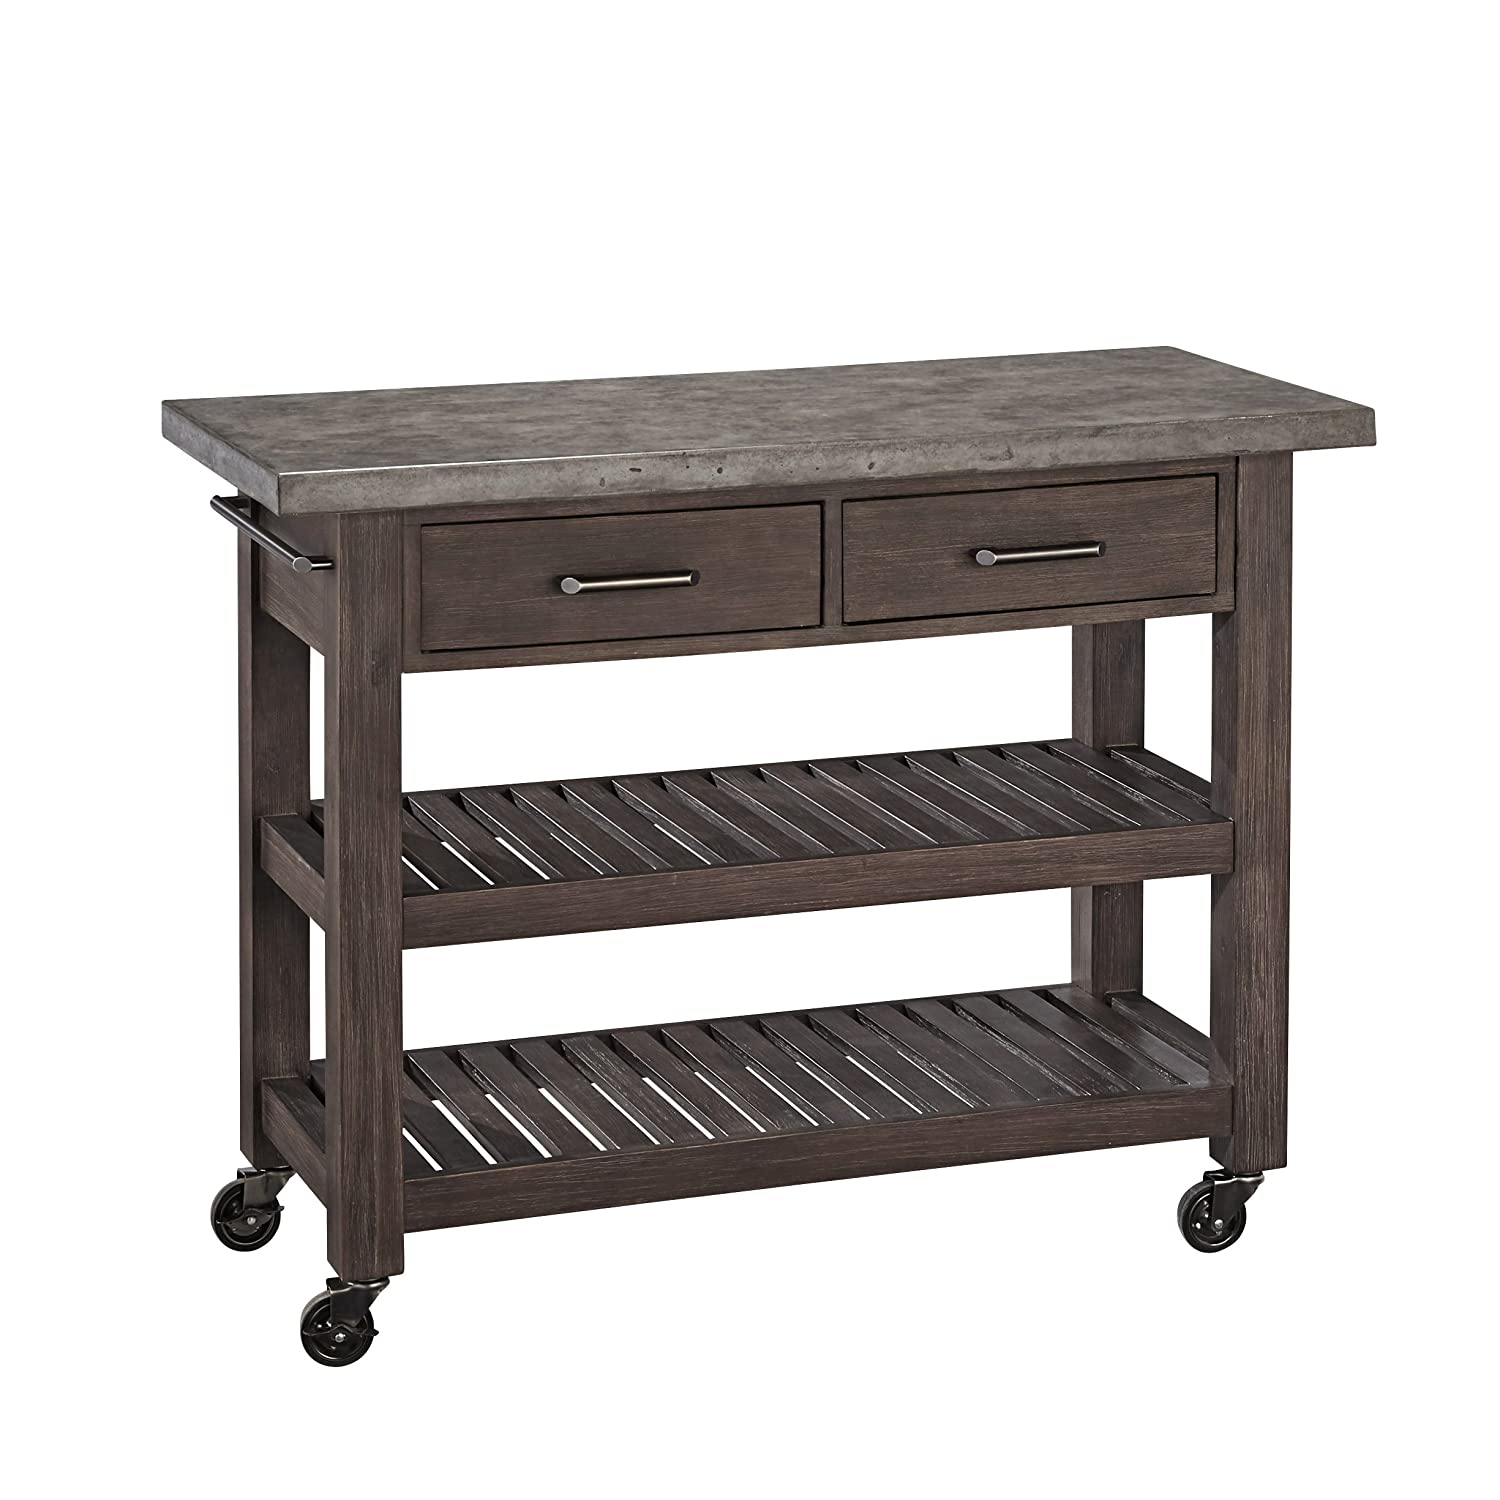 amazon com   home styles concrete chic kitchen cart   kitchen islands  u0026 carts amazon com   home styles concrete chic kitchen cart   kitchen      rh   amazon com